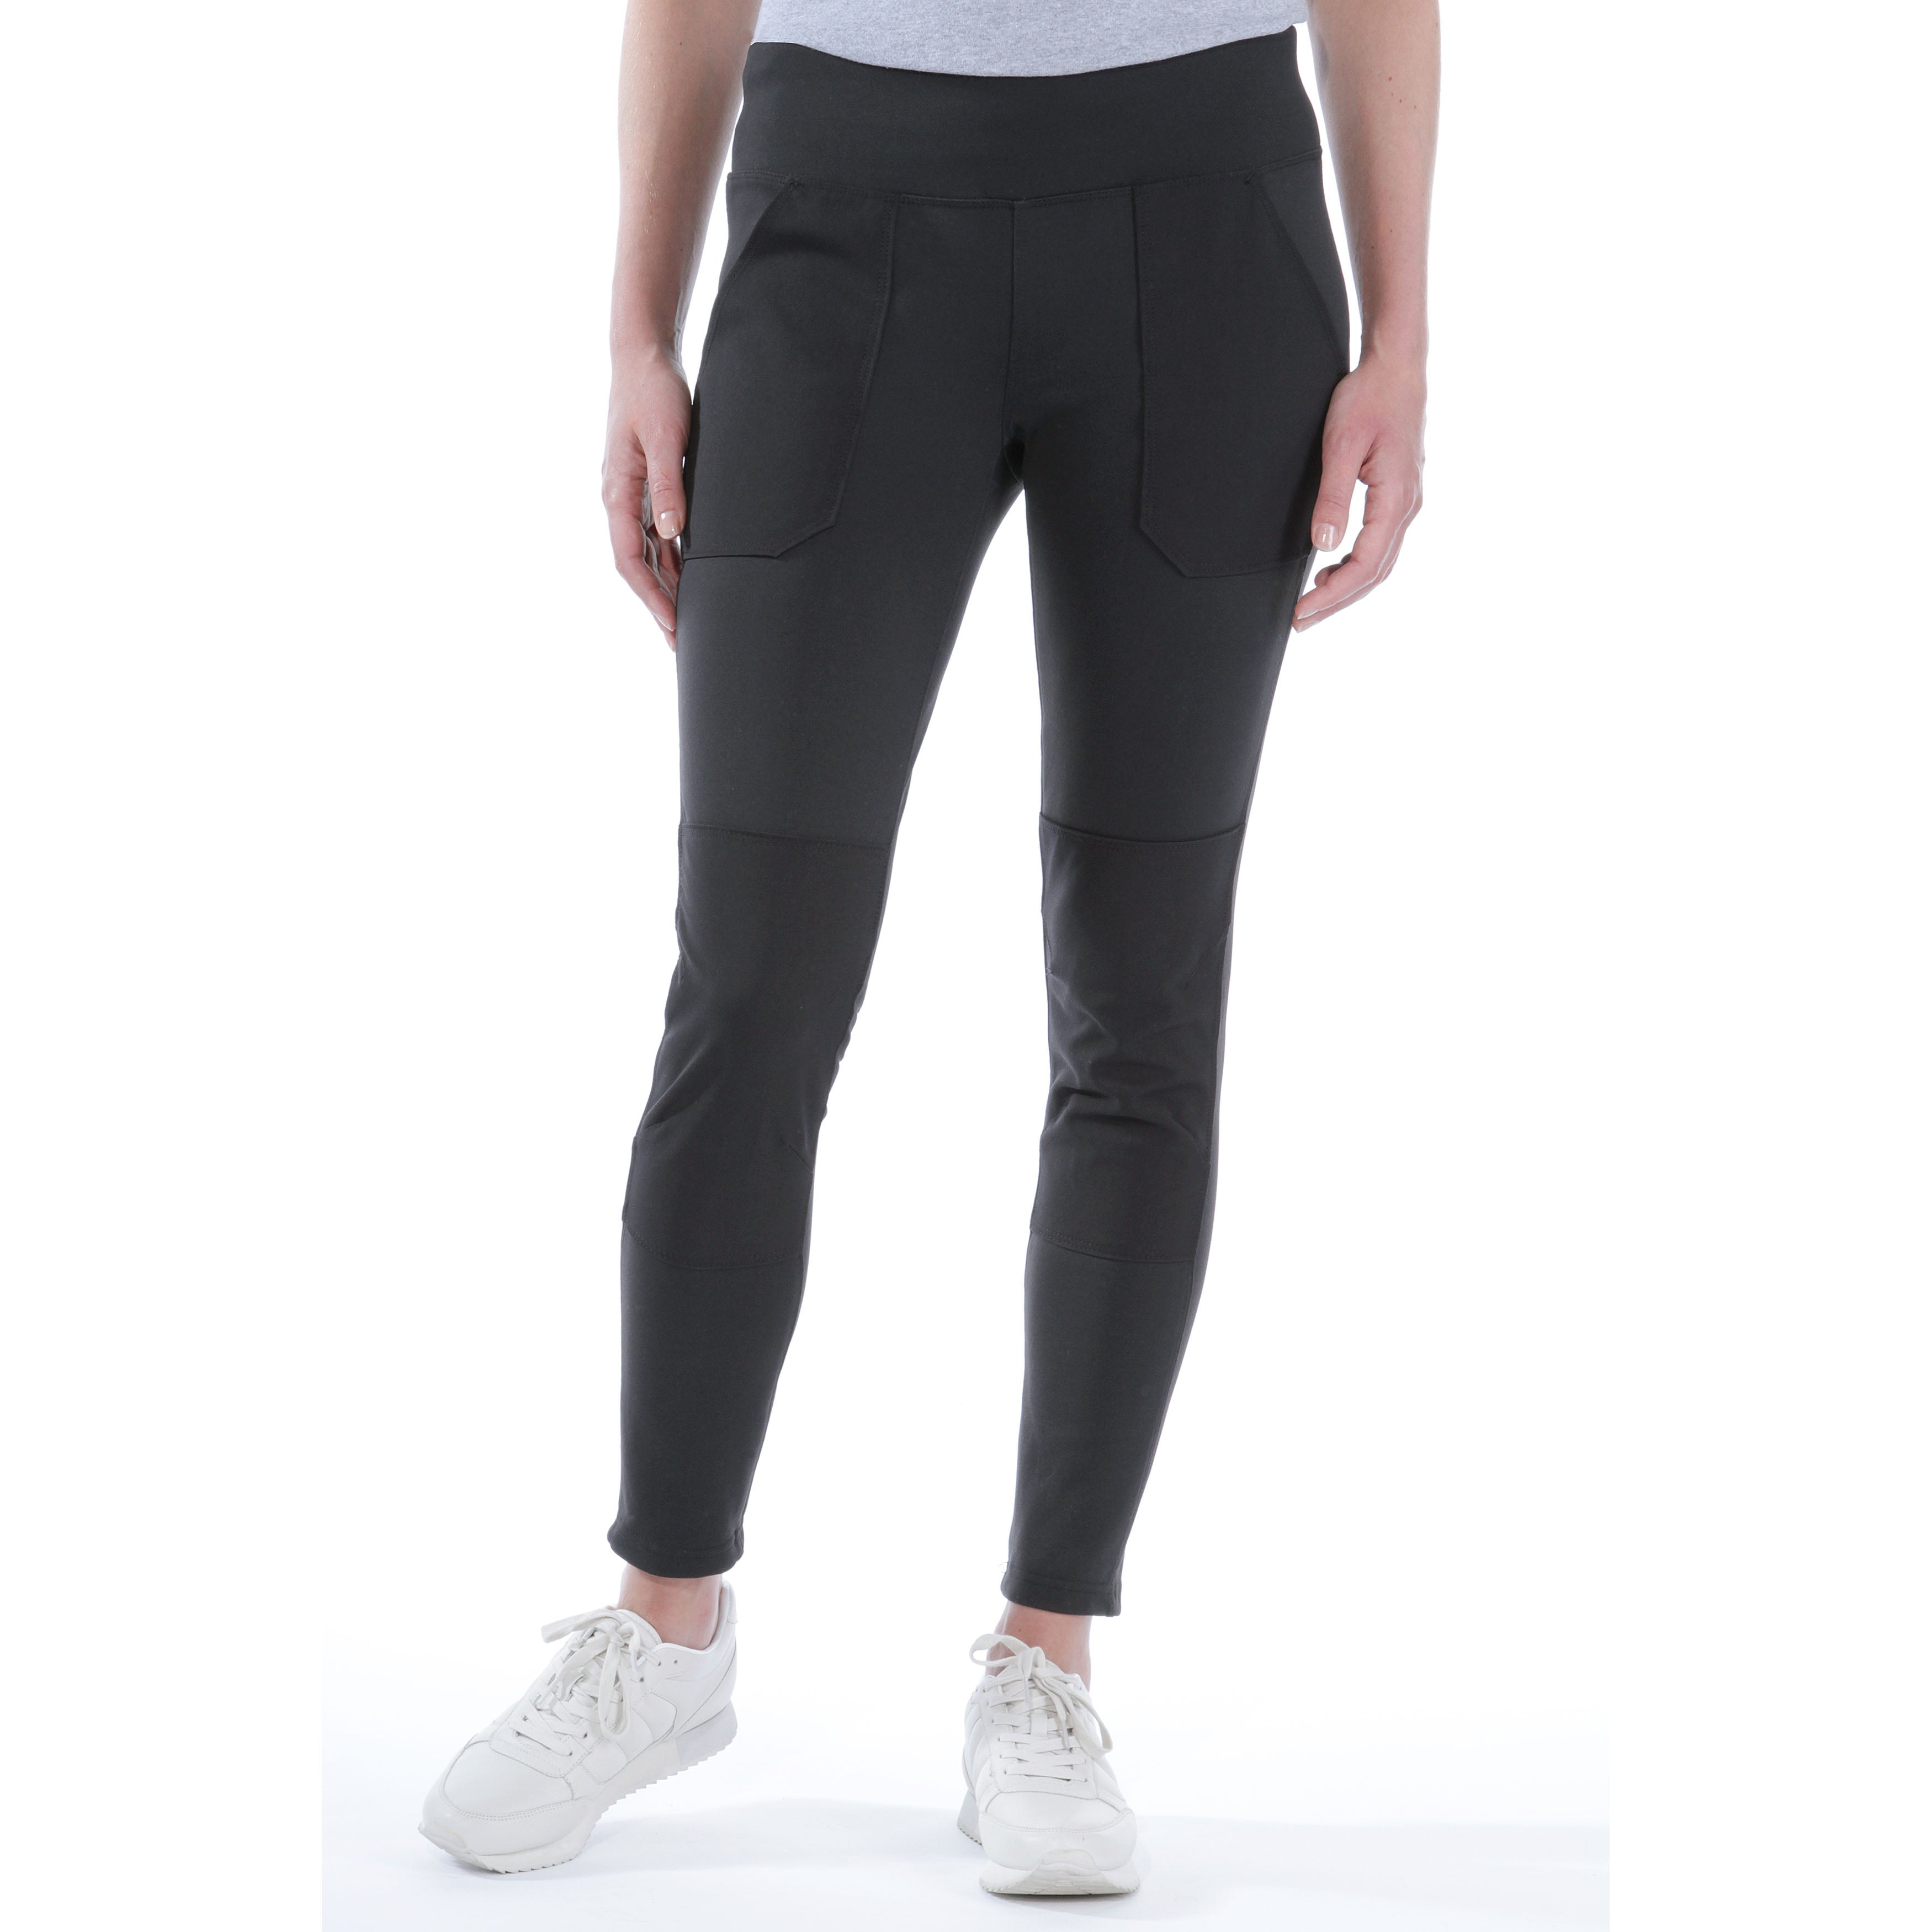 c57aeaaf6e WB102482 Carhartt Women's Force® Utility Legging | Pioneer Outfitters